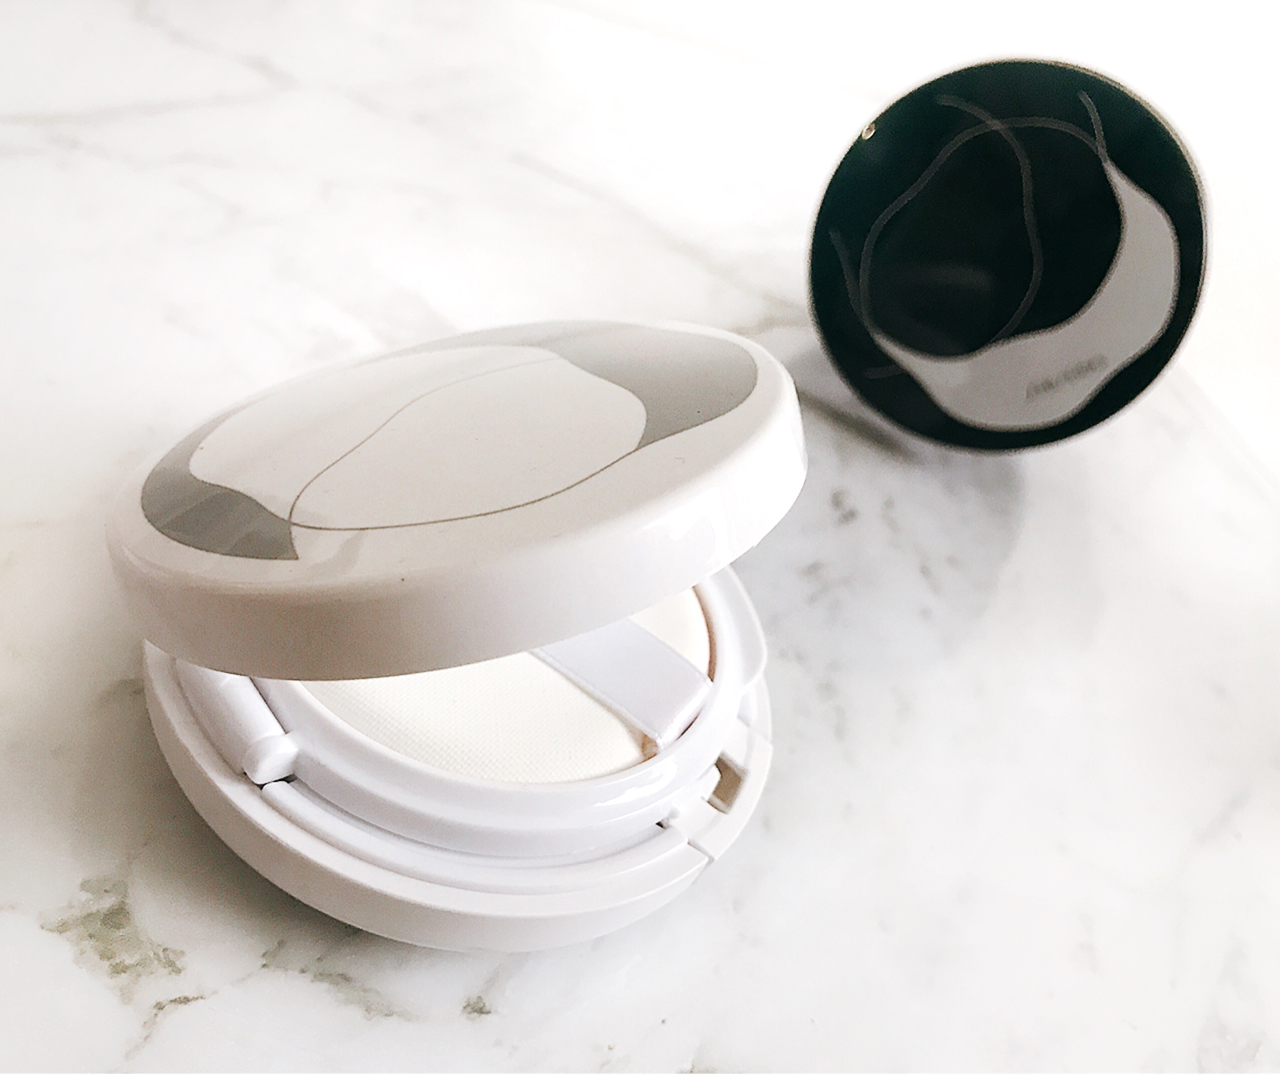 Shiseido Synchro Skin White Cushion casing